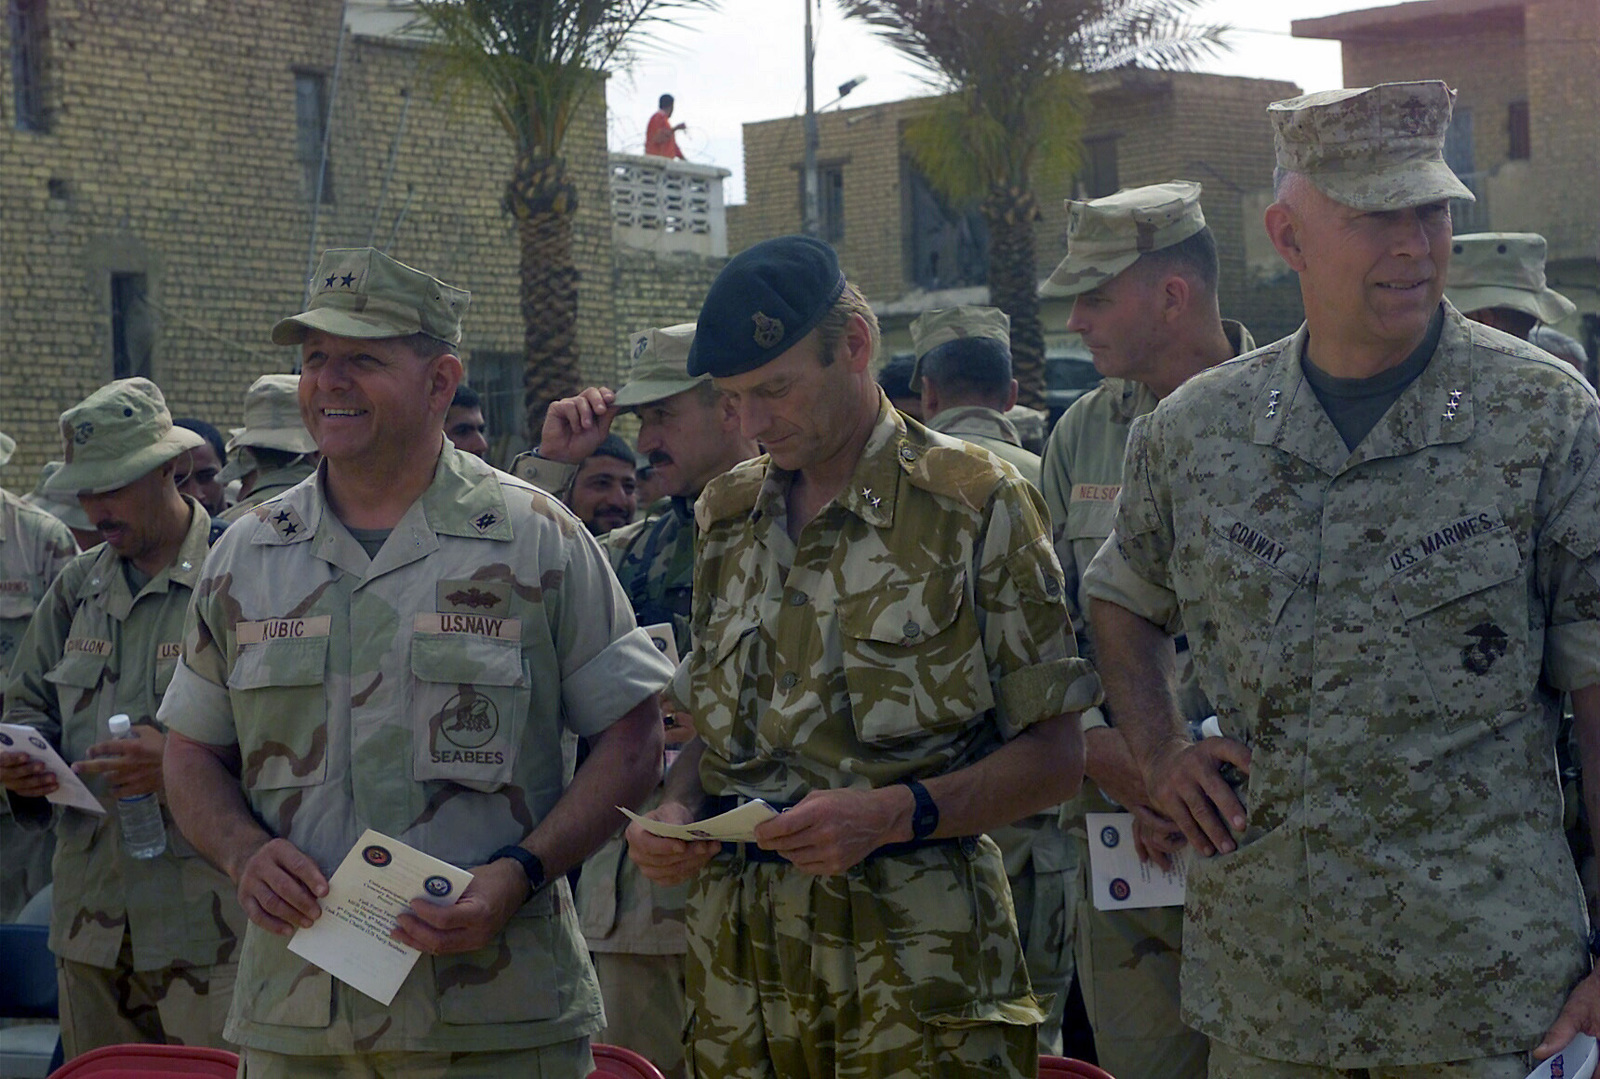 High ranking US Military and British (UK) Army Officers on hand for the Ceremony to rededicate the World War I (WWI) era British Cemetery, located in Al Kut, Iraq, during Operation IRAQI FREEDOM. Pictured foreground left-to-right, US Navy (USN) Rear Admiral (RAMD) Charles R. Kubic, Commander, First Naval Construction Division, US Atlantic Fleet/Commander, Naval Construction Forces Command; British Army Major General (MGEN) Robin Brimms, Commander, British 1ST Armored Division; and US Marine Corps (USMC) Lieutenant General (LGEN) James T. Conway, Commanding General, 1ST Marine Expeditionary Force (MEF)